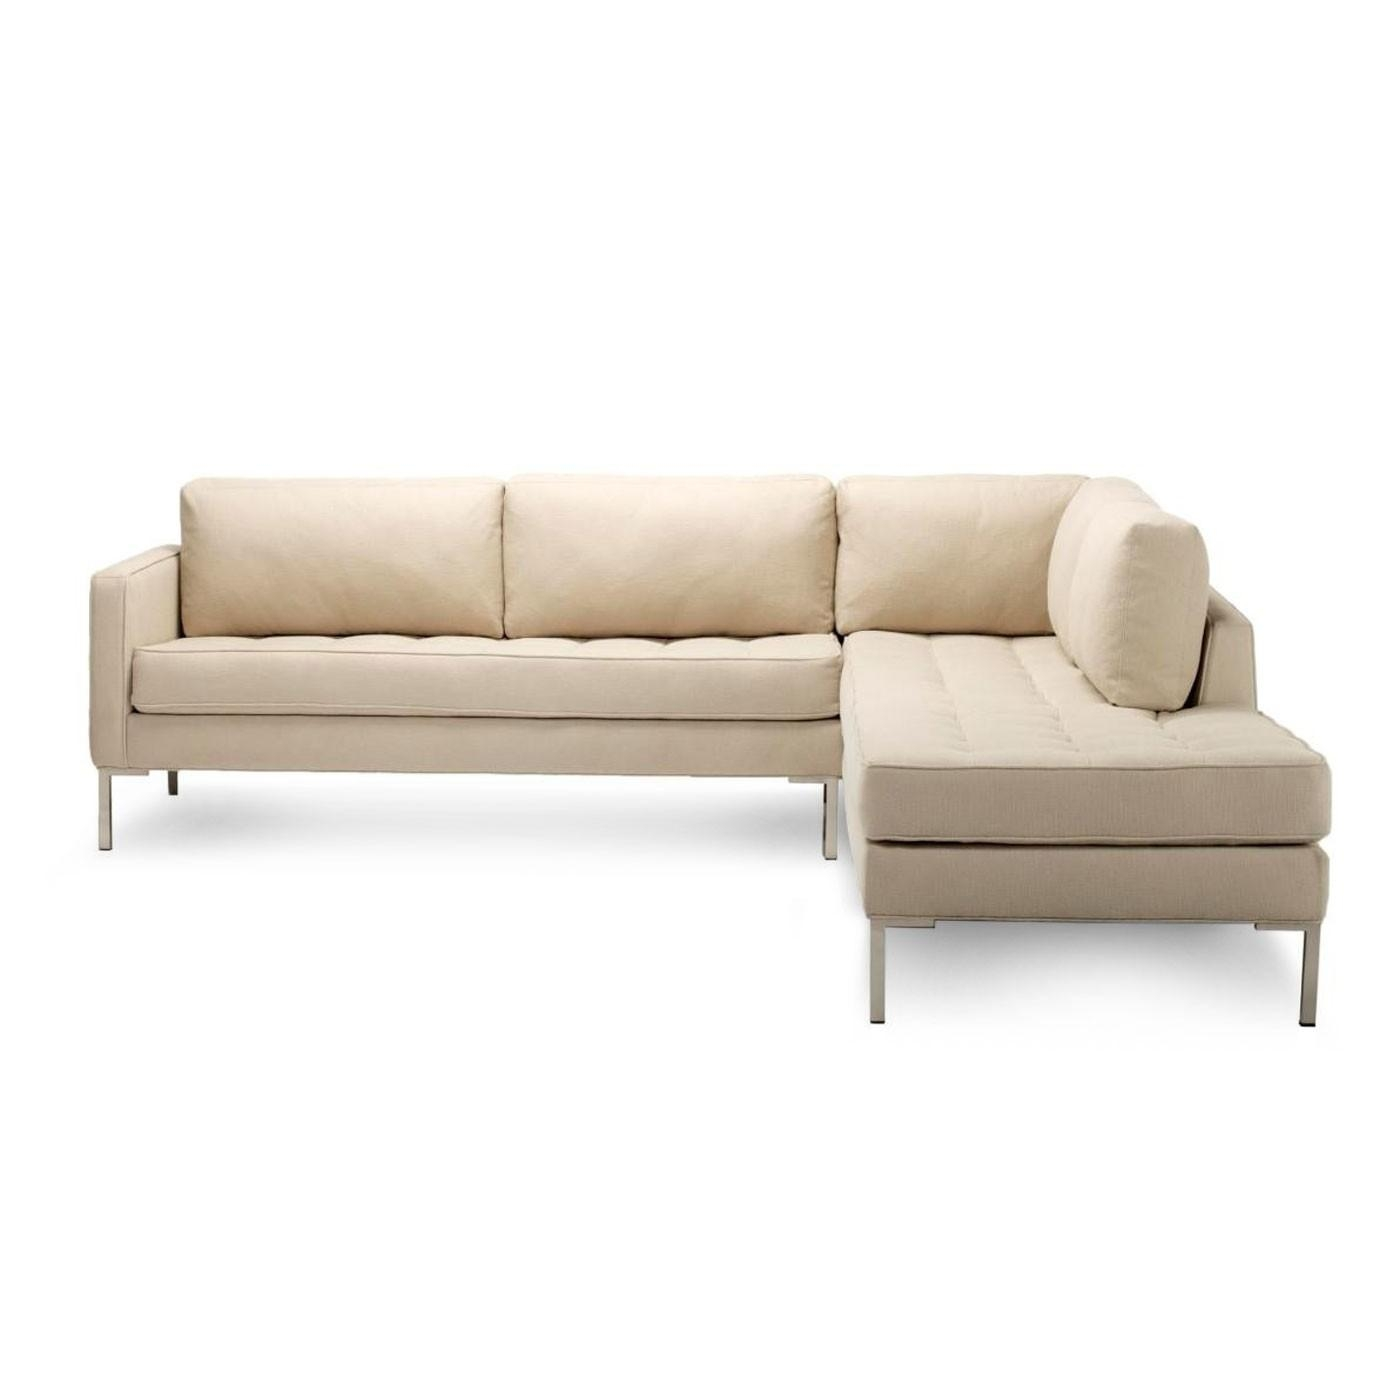 Furniture: Armless Sofa | Armless Sofa Bed | Armless Settee With Small Armless Sofa (Image 4 of 20)